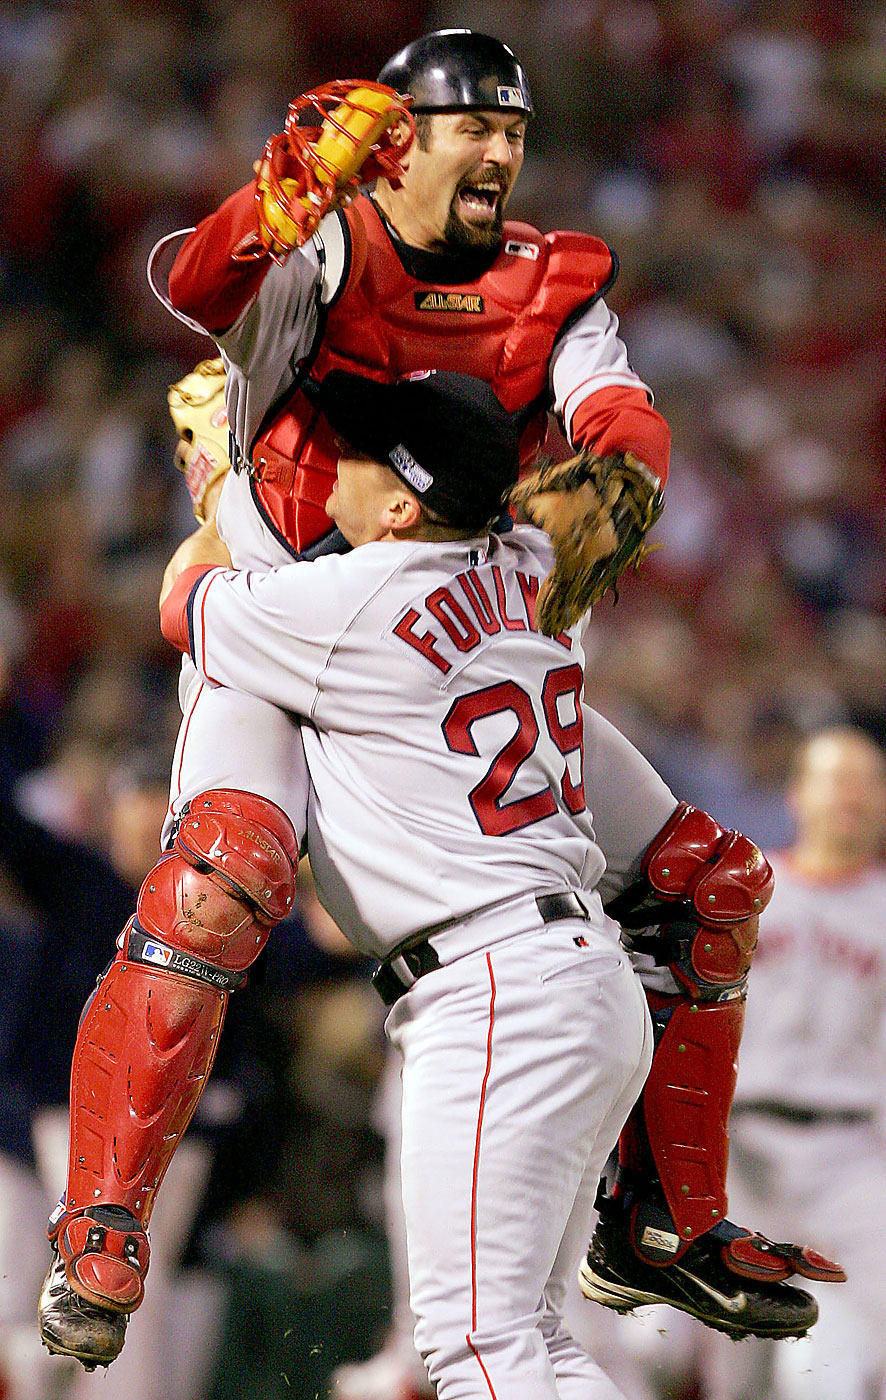 Jason Varitek and Keith Foulke of the Boston Red Sox celebrate after defeating the St. Louis Cardinals 3-0 in game four of the World Series on October 27, 2004 at Busch Stadium in St. Louis, Missouri.